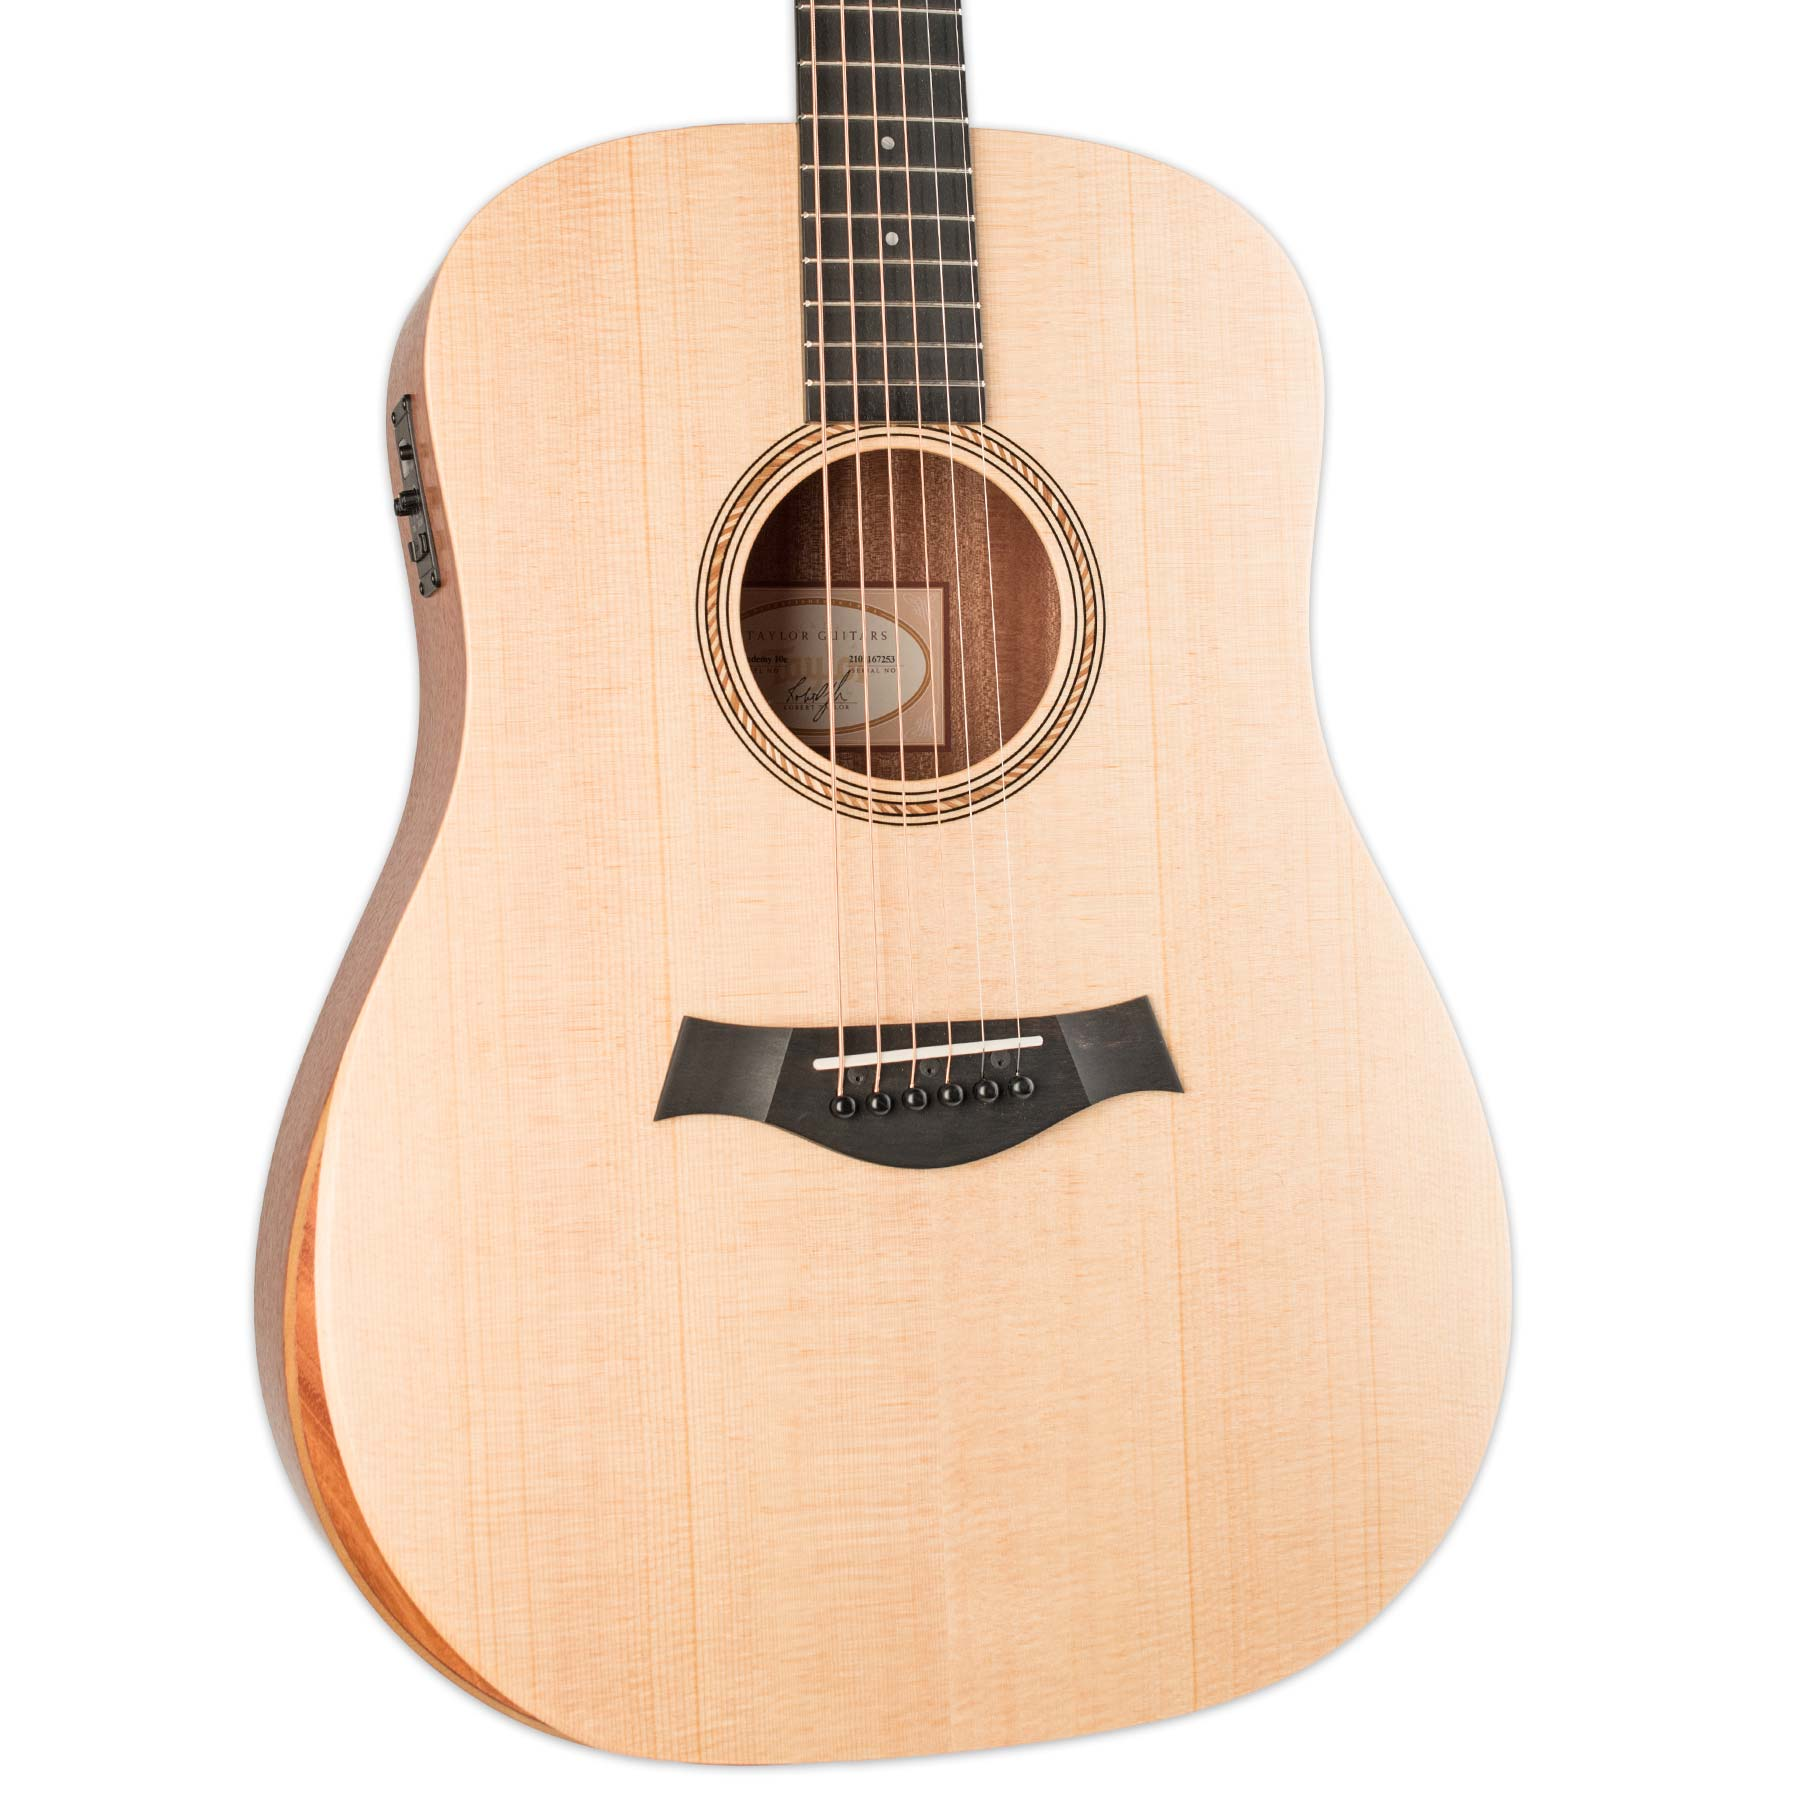 TAYLOR ACADEMY 10e ACOUSTIC ELECTRIC GUITAR WITH BAG